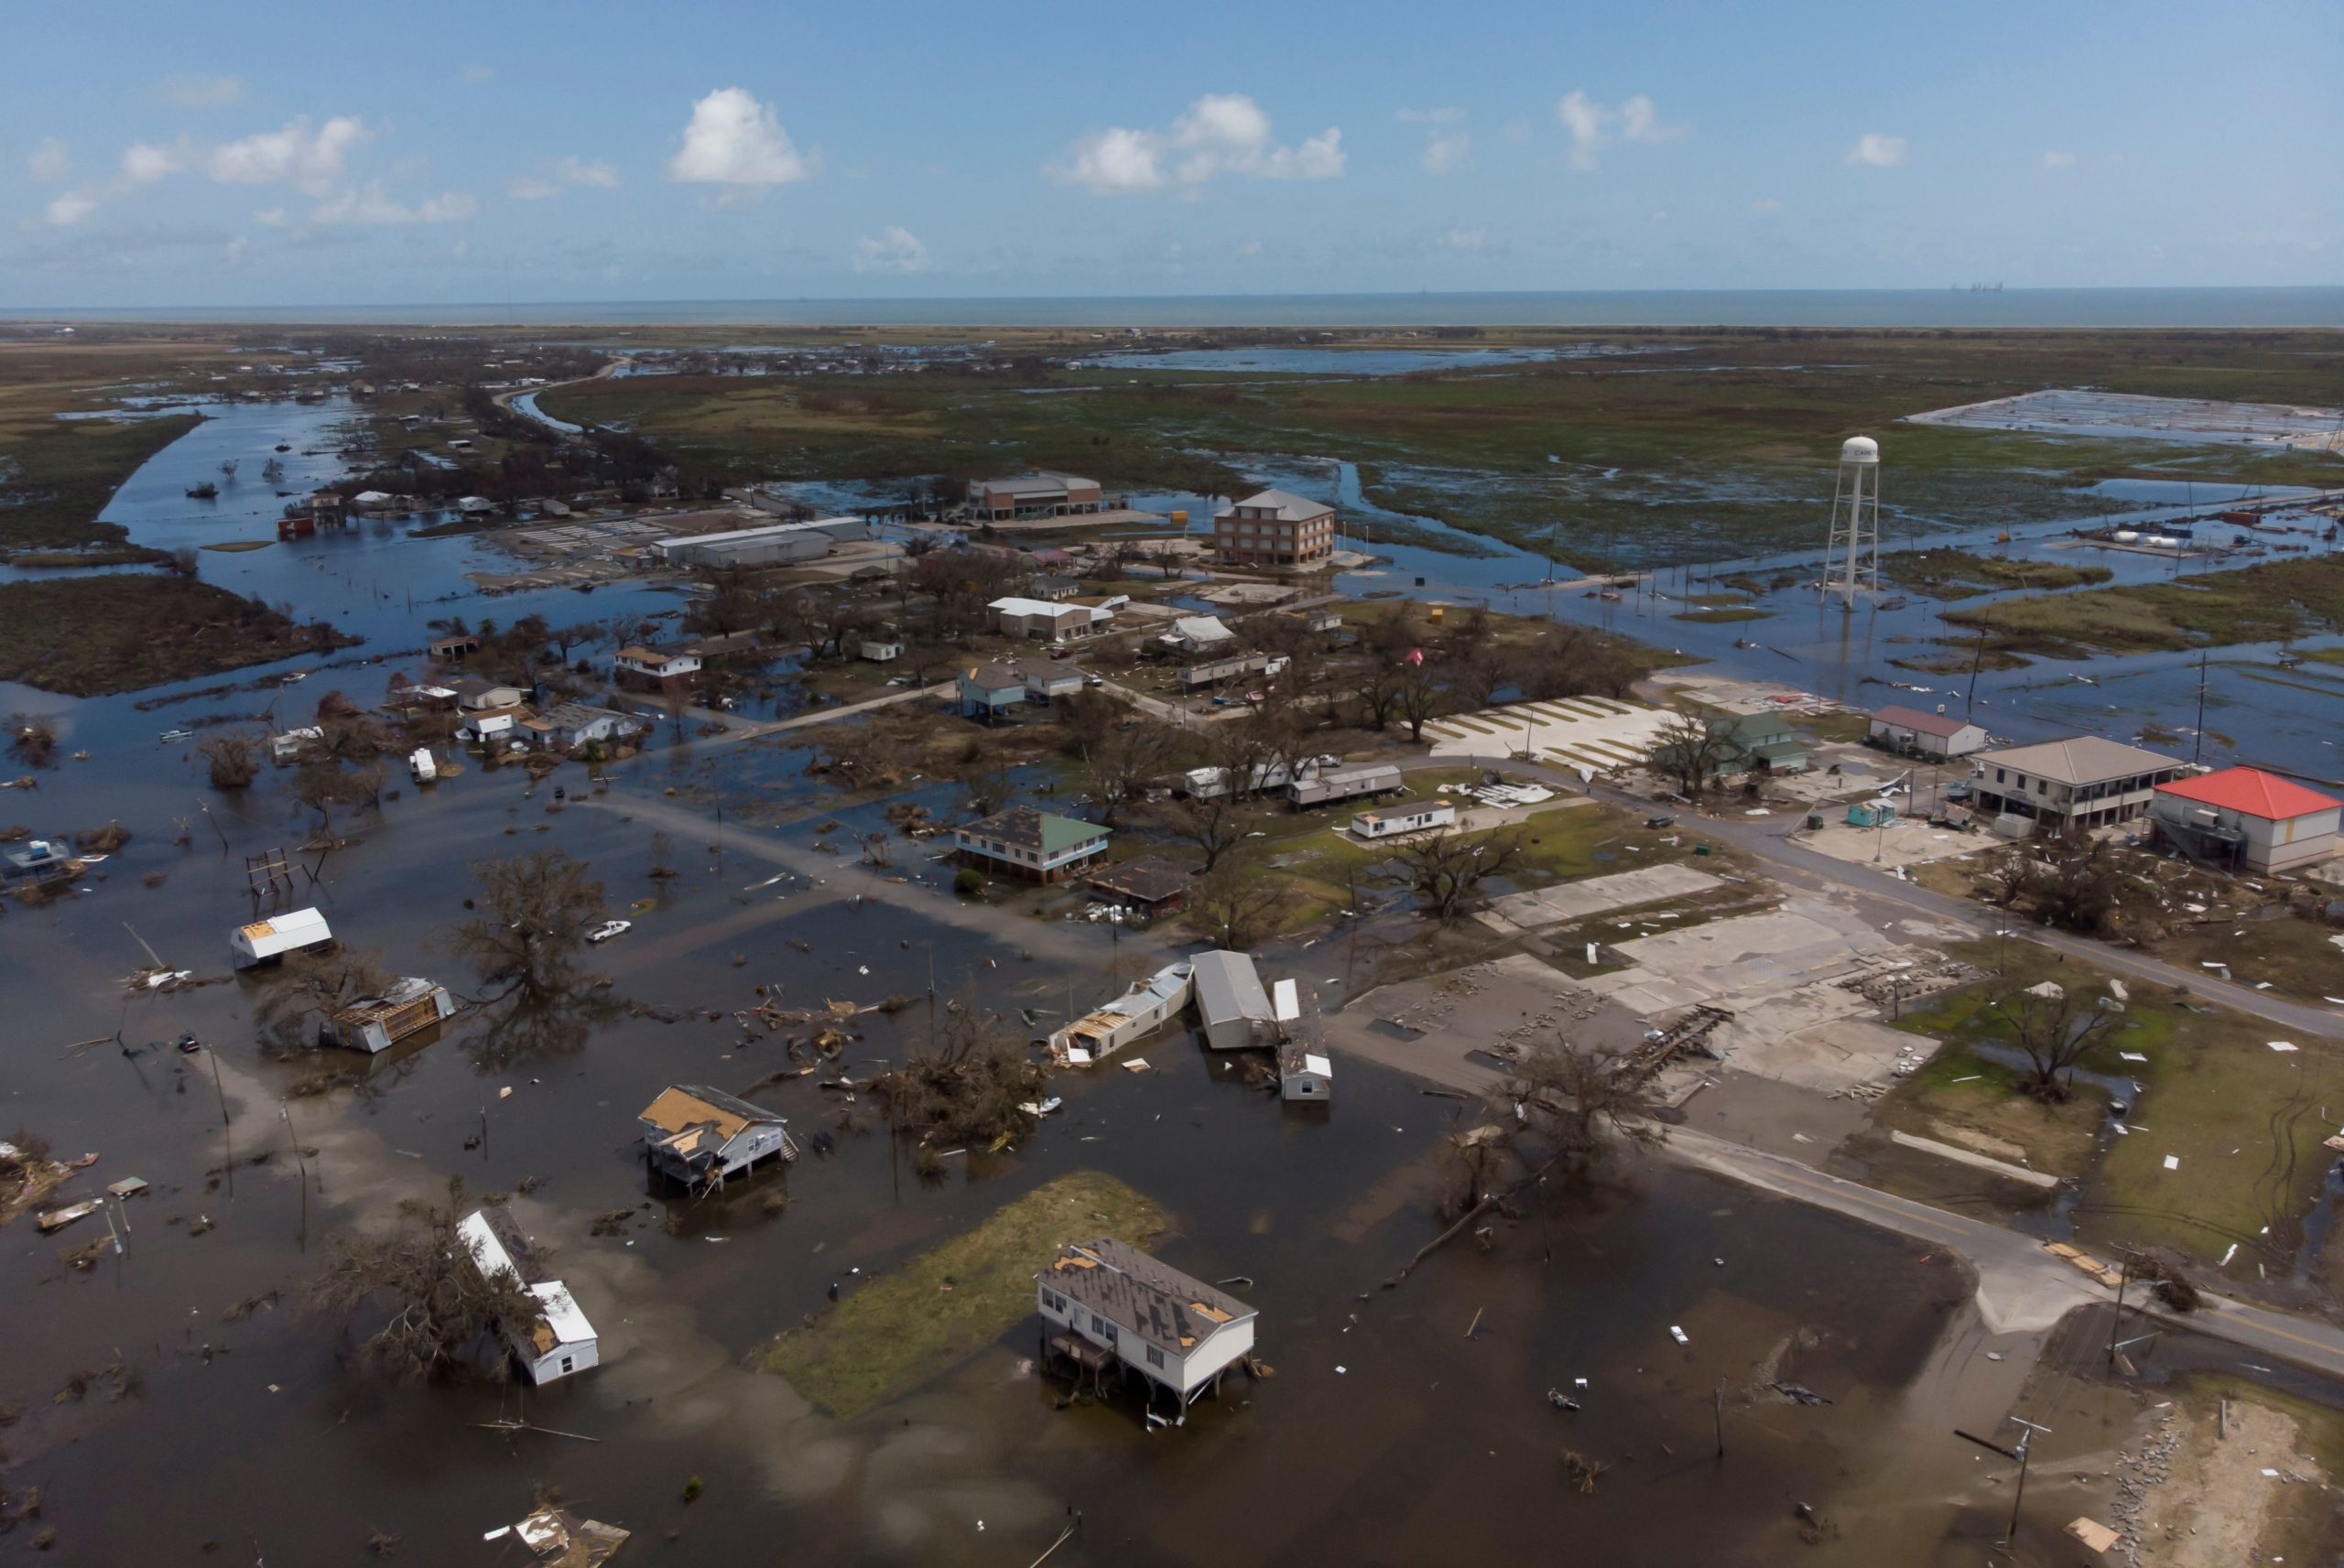 An aerial view shows homes that were destroyed by Hurricane Laura on August 29, 2020 in Cameron, Louisiana. - At least 14 people were killed after Hurricane Laura slammed into the southern US states of Louisiana and Texas, authorities and local media said on August 28. (Photo by Stringer/AFP via Getty Images)